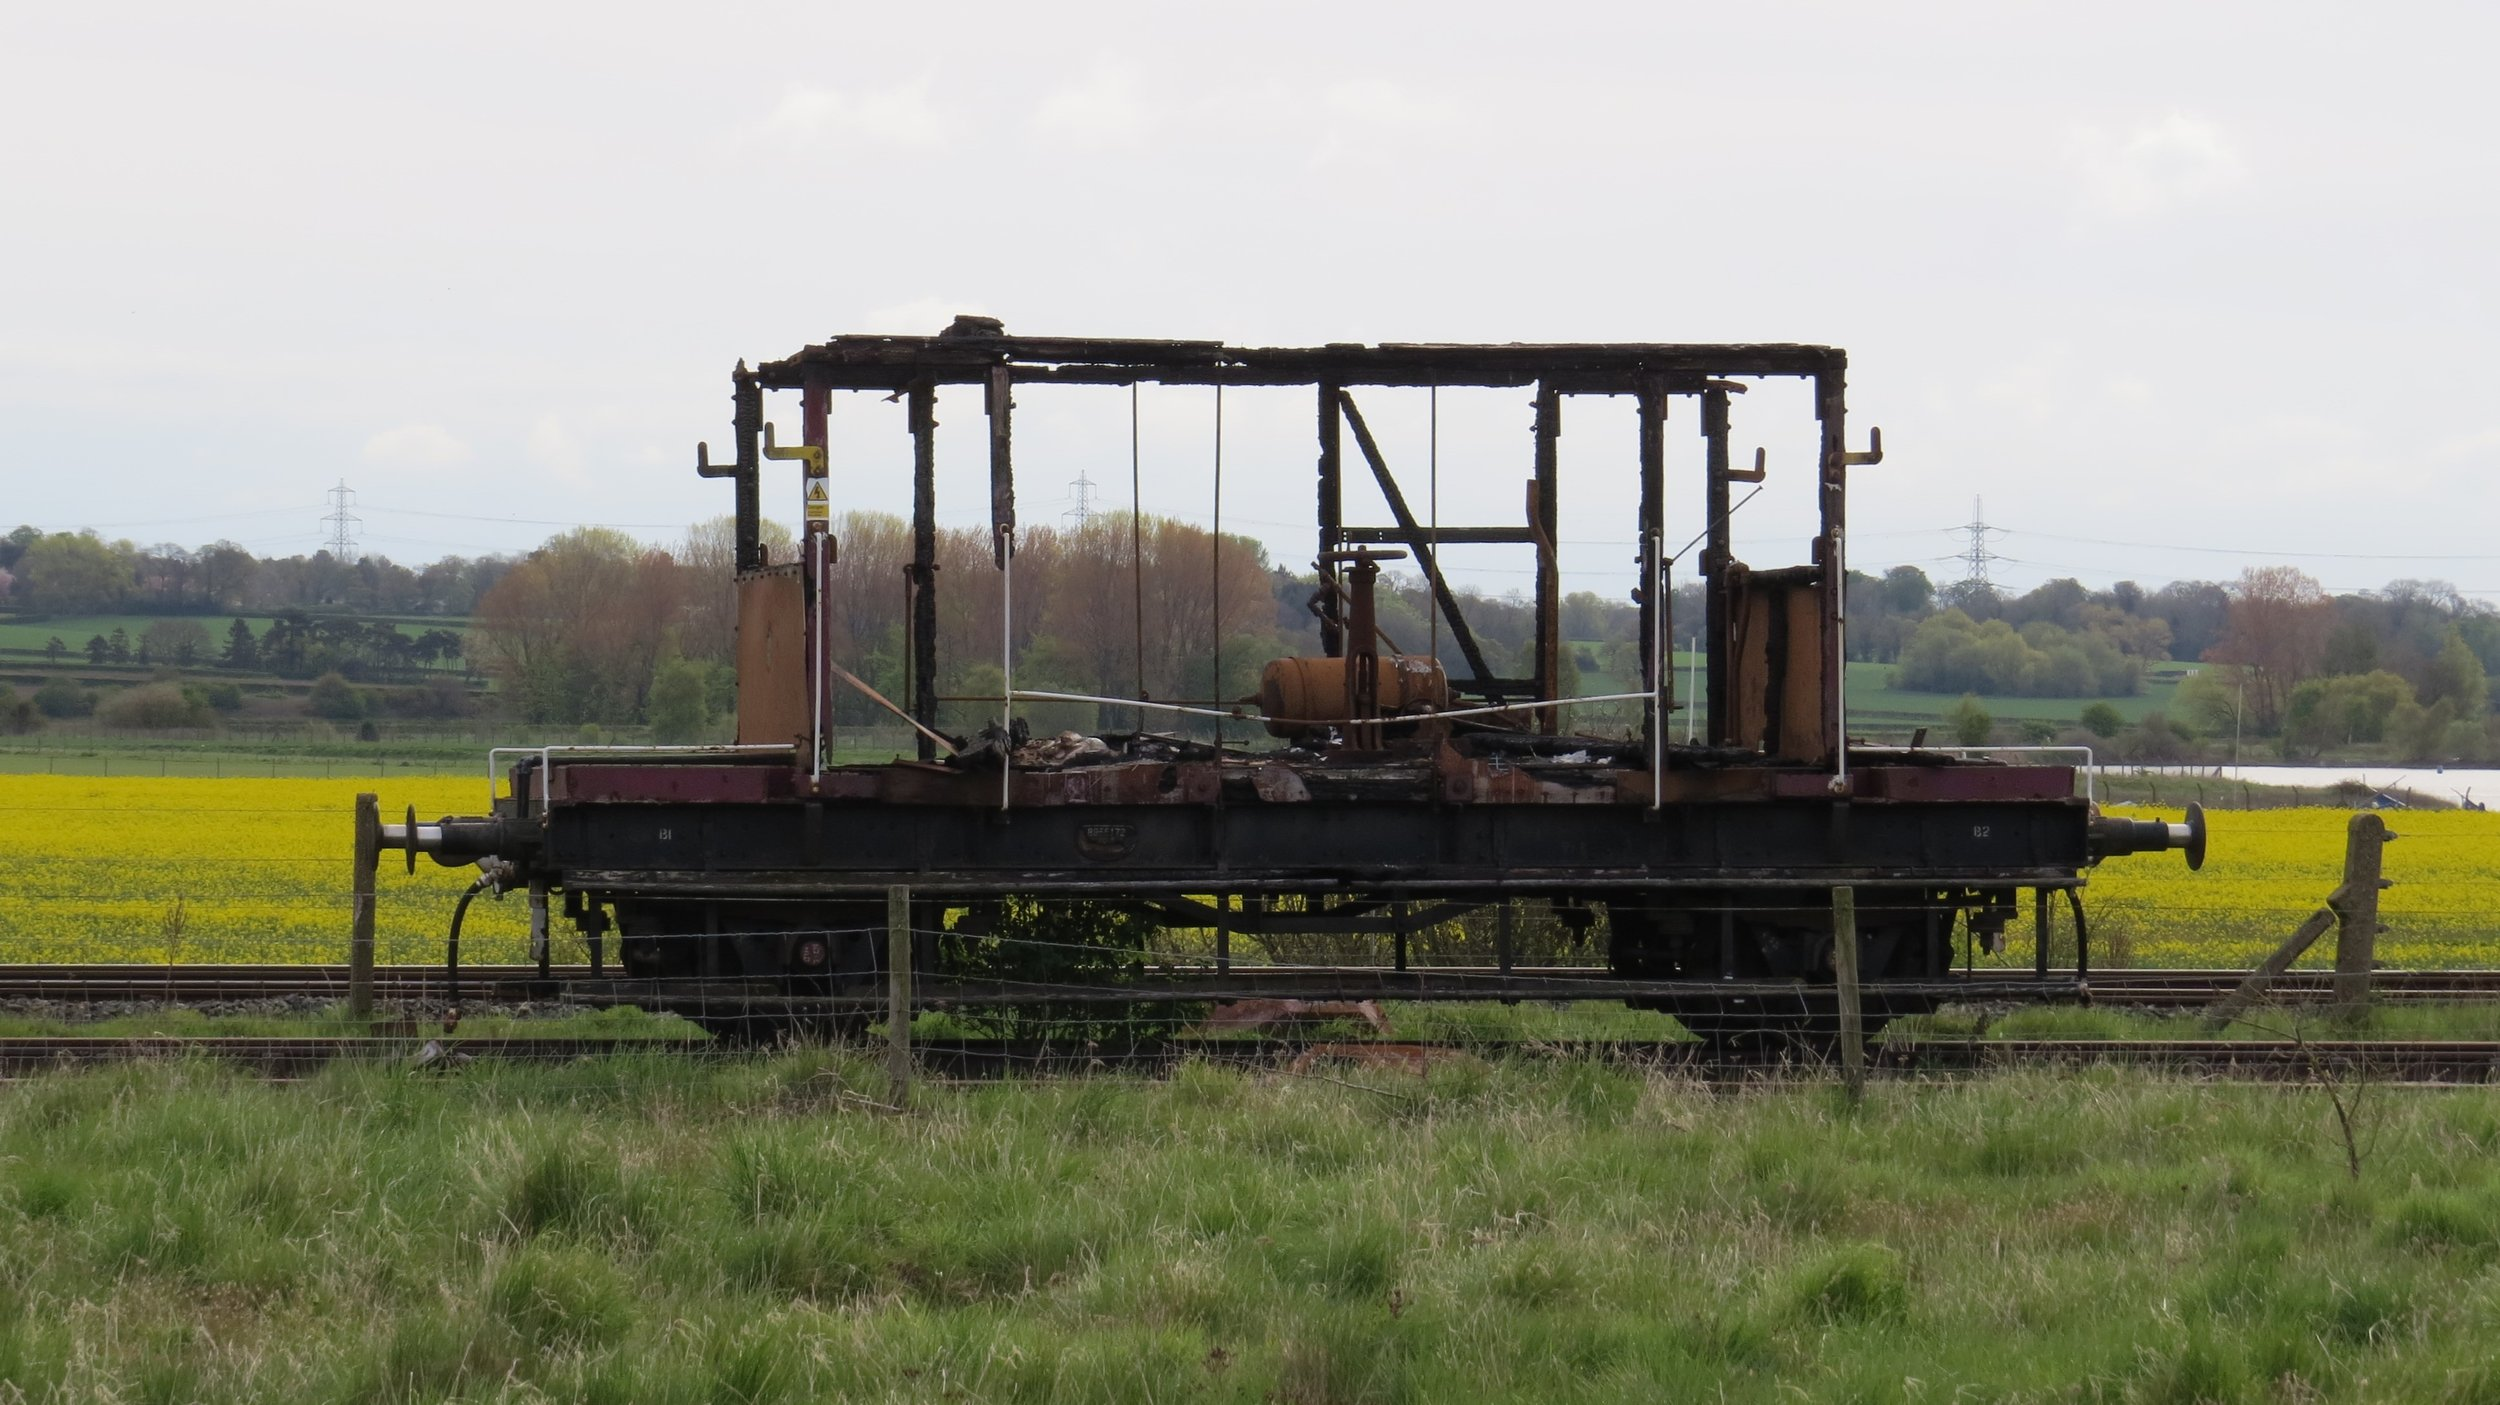 Decaying Train Carriage